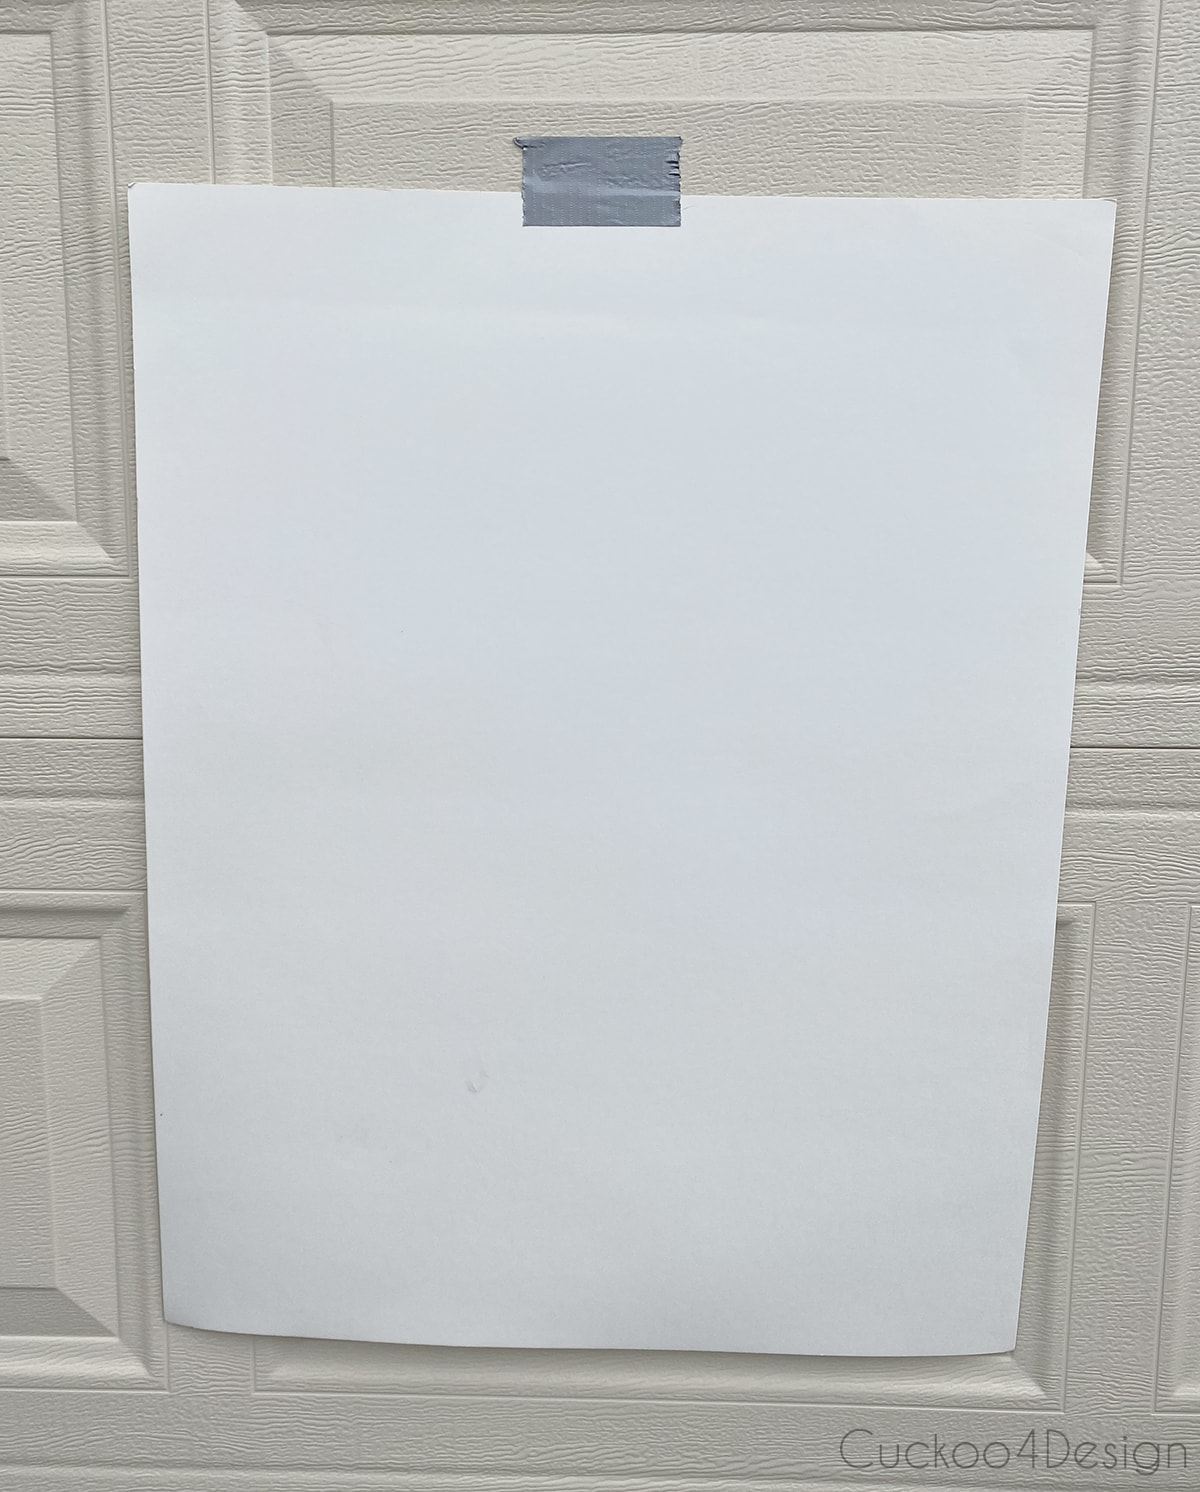 hanging poster board on outdoor wall with tape